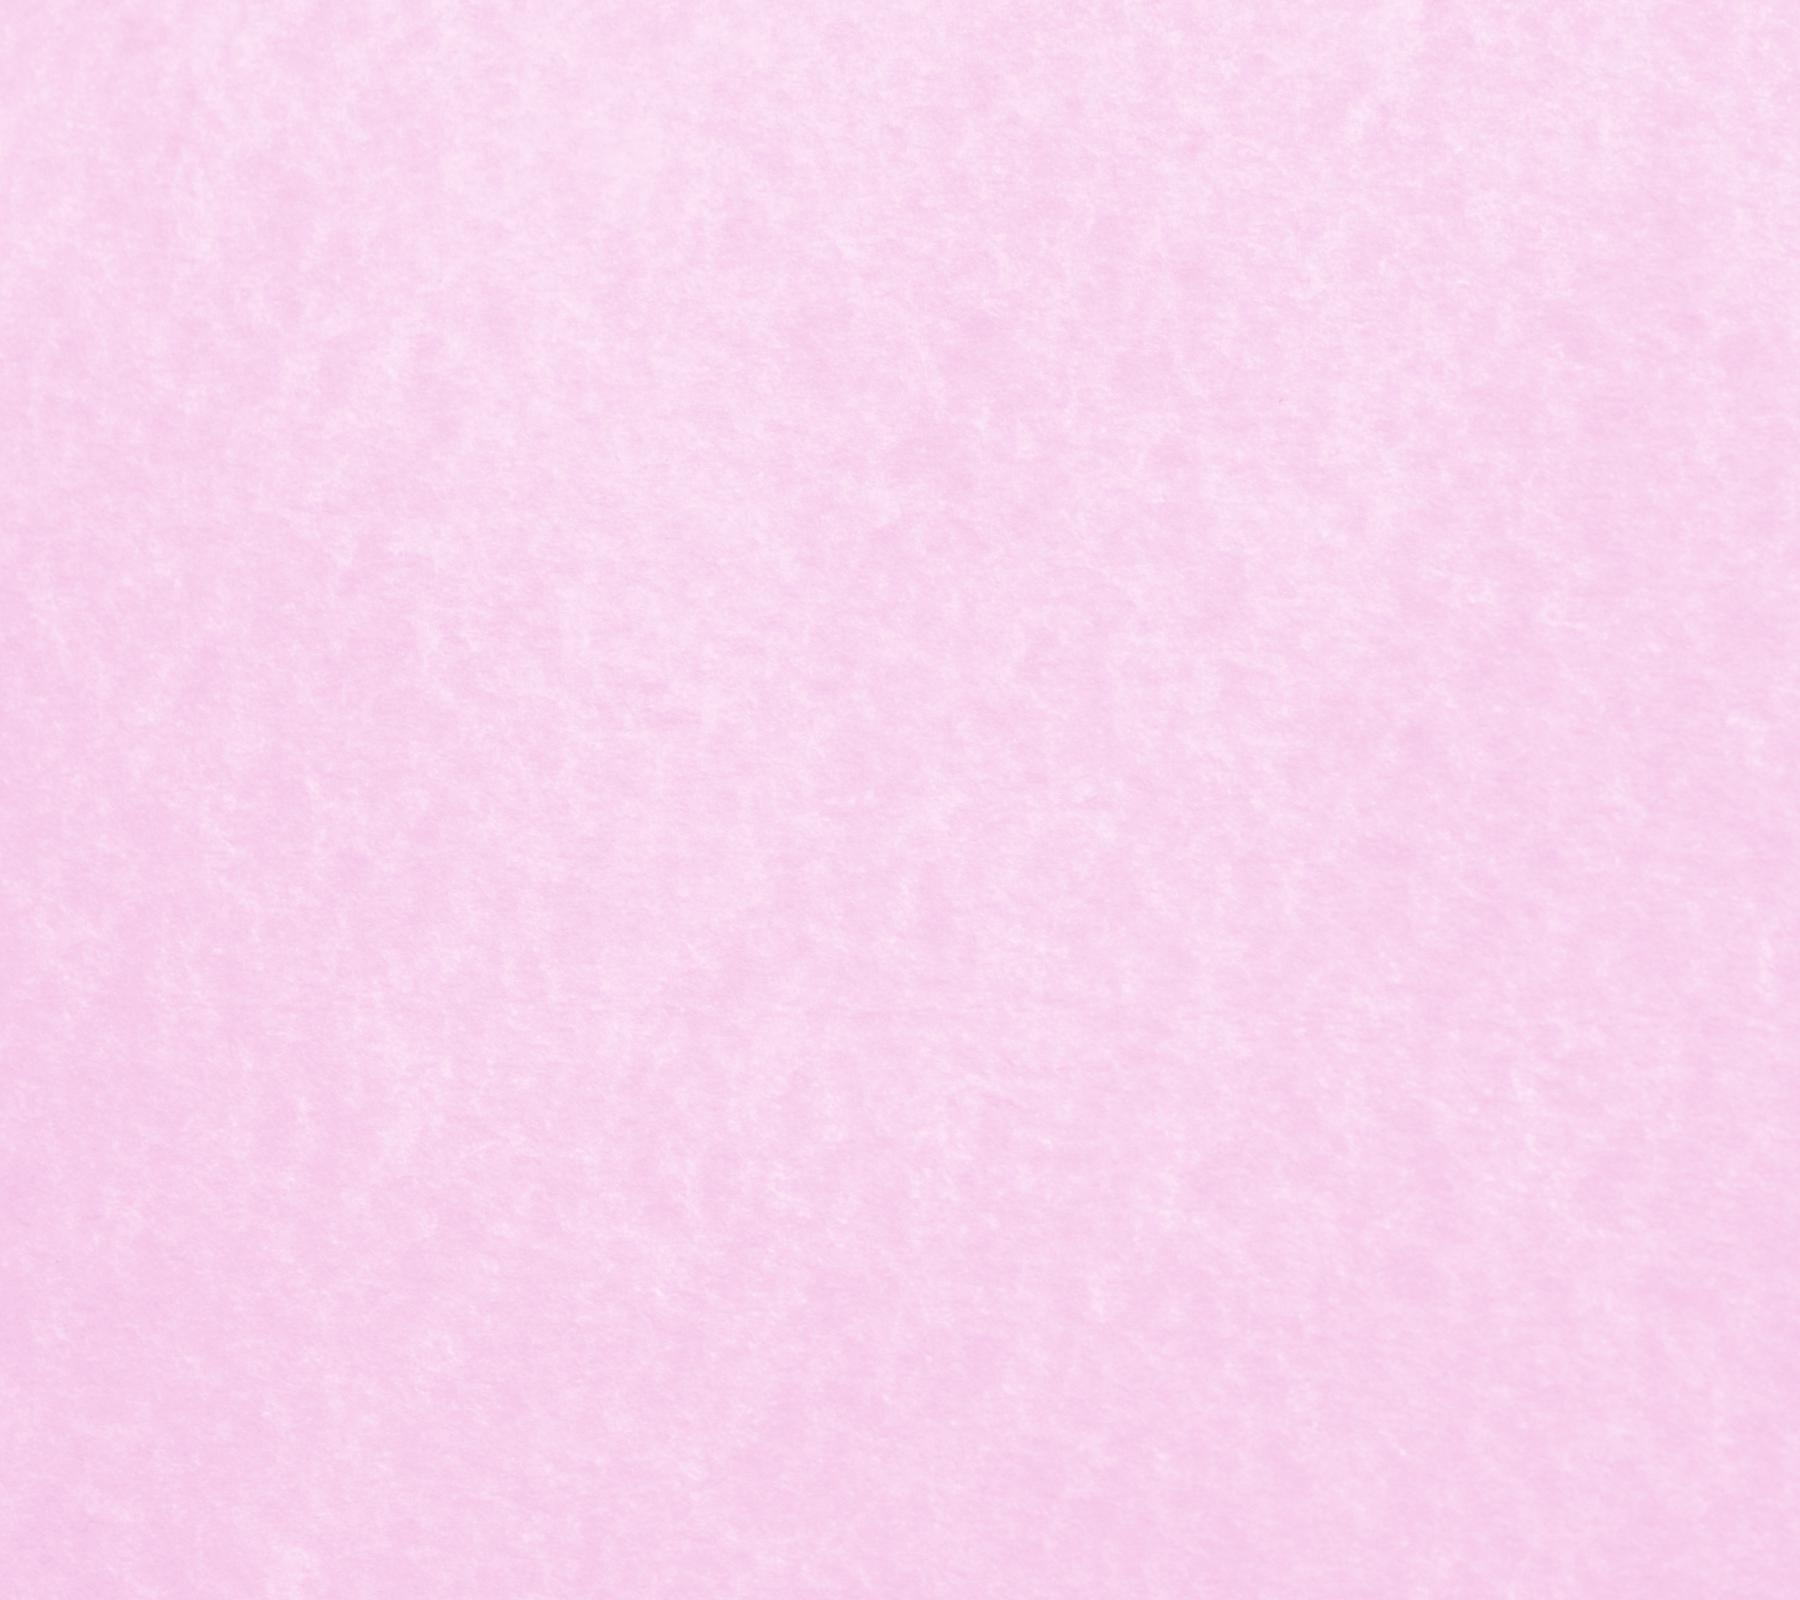 light pink backgrounds - wallpaper cave | free wallpapers